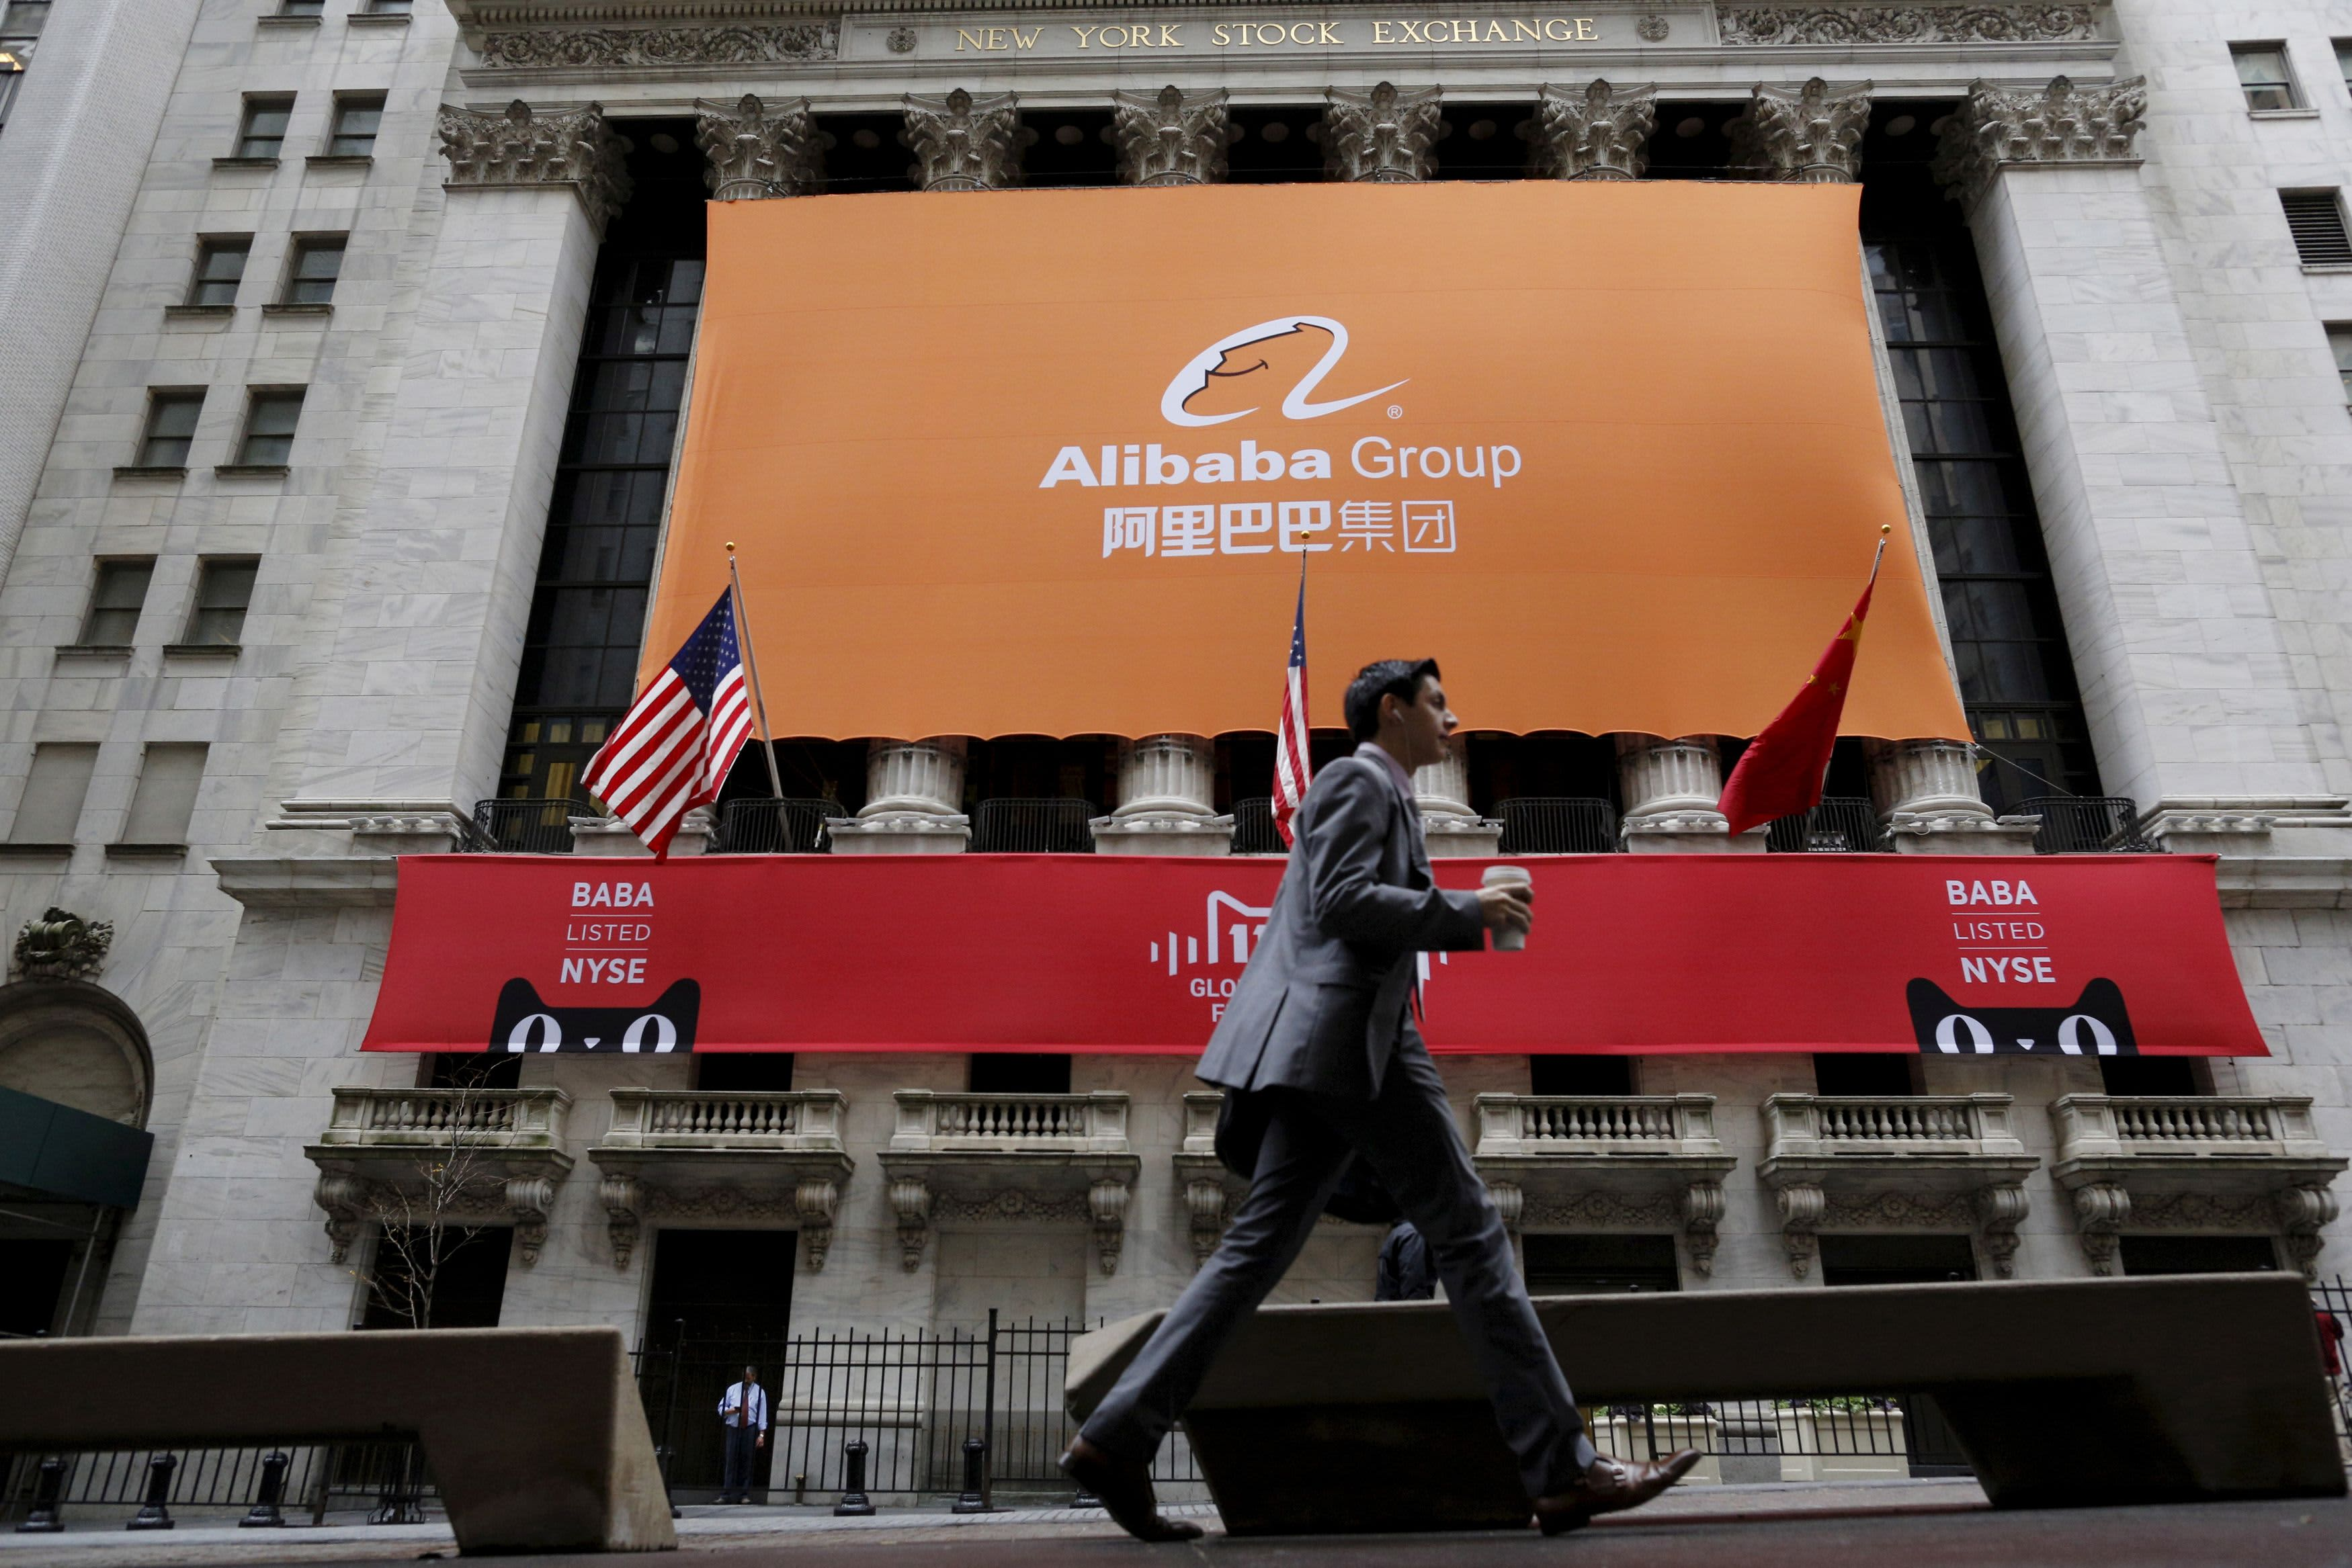 Stocks making the biggest moves premarket: Alibaba AT&T AstraZeneca DoorDash others – CNBC